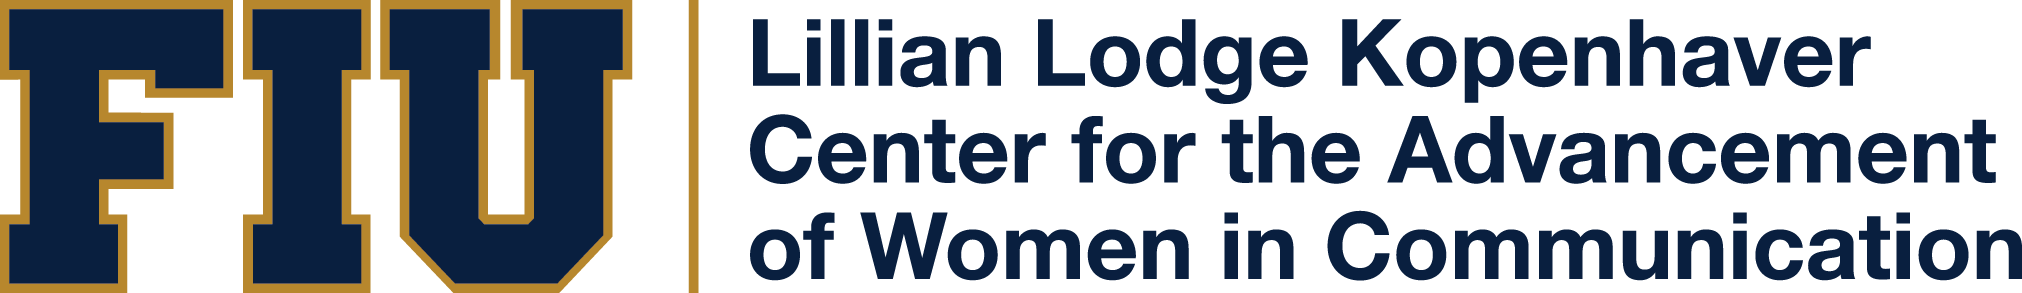 LLK Center Logo